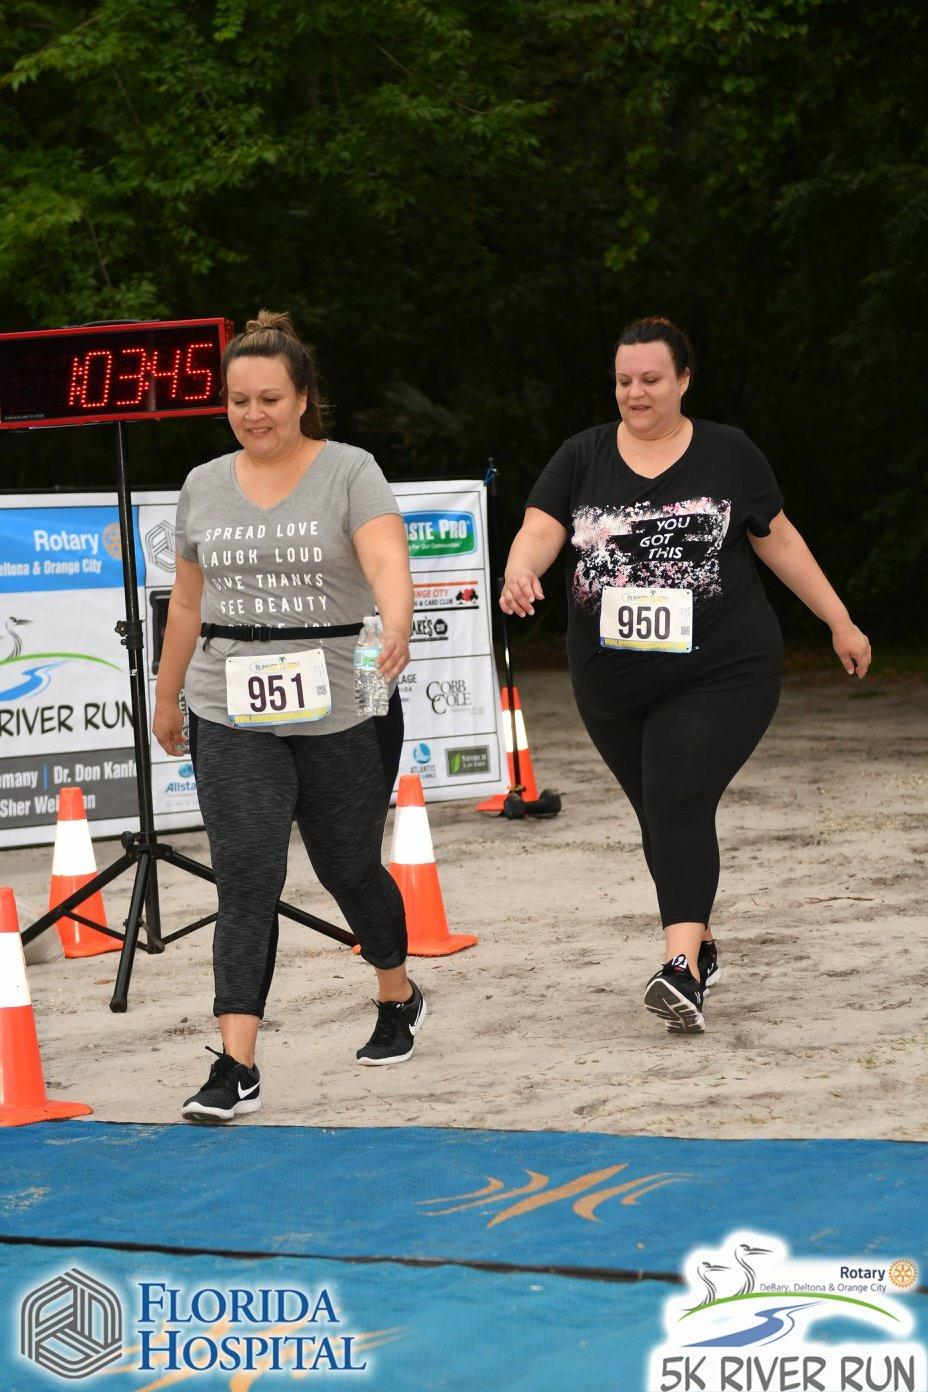 Some more 5k race pictures rotary club of debary deltona for Fish memorial hospital orange city